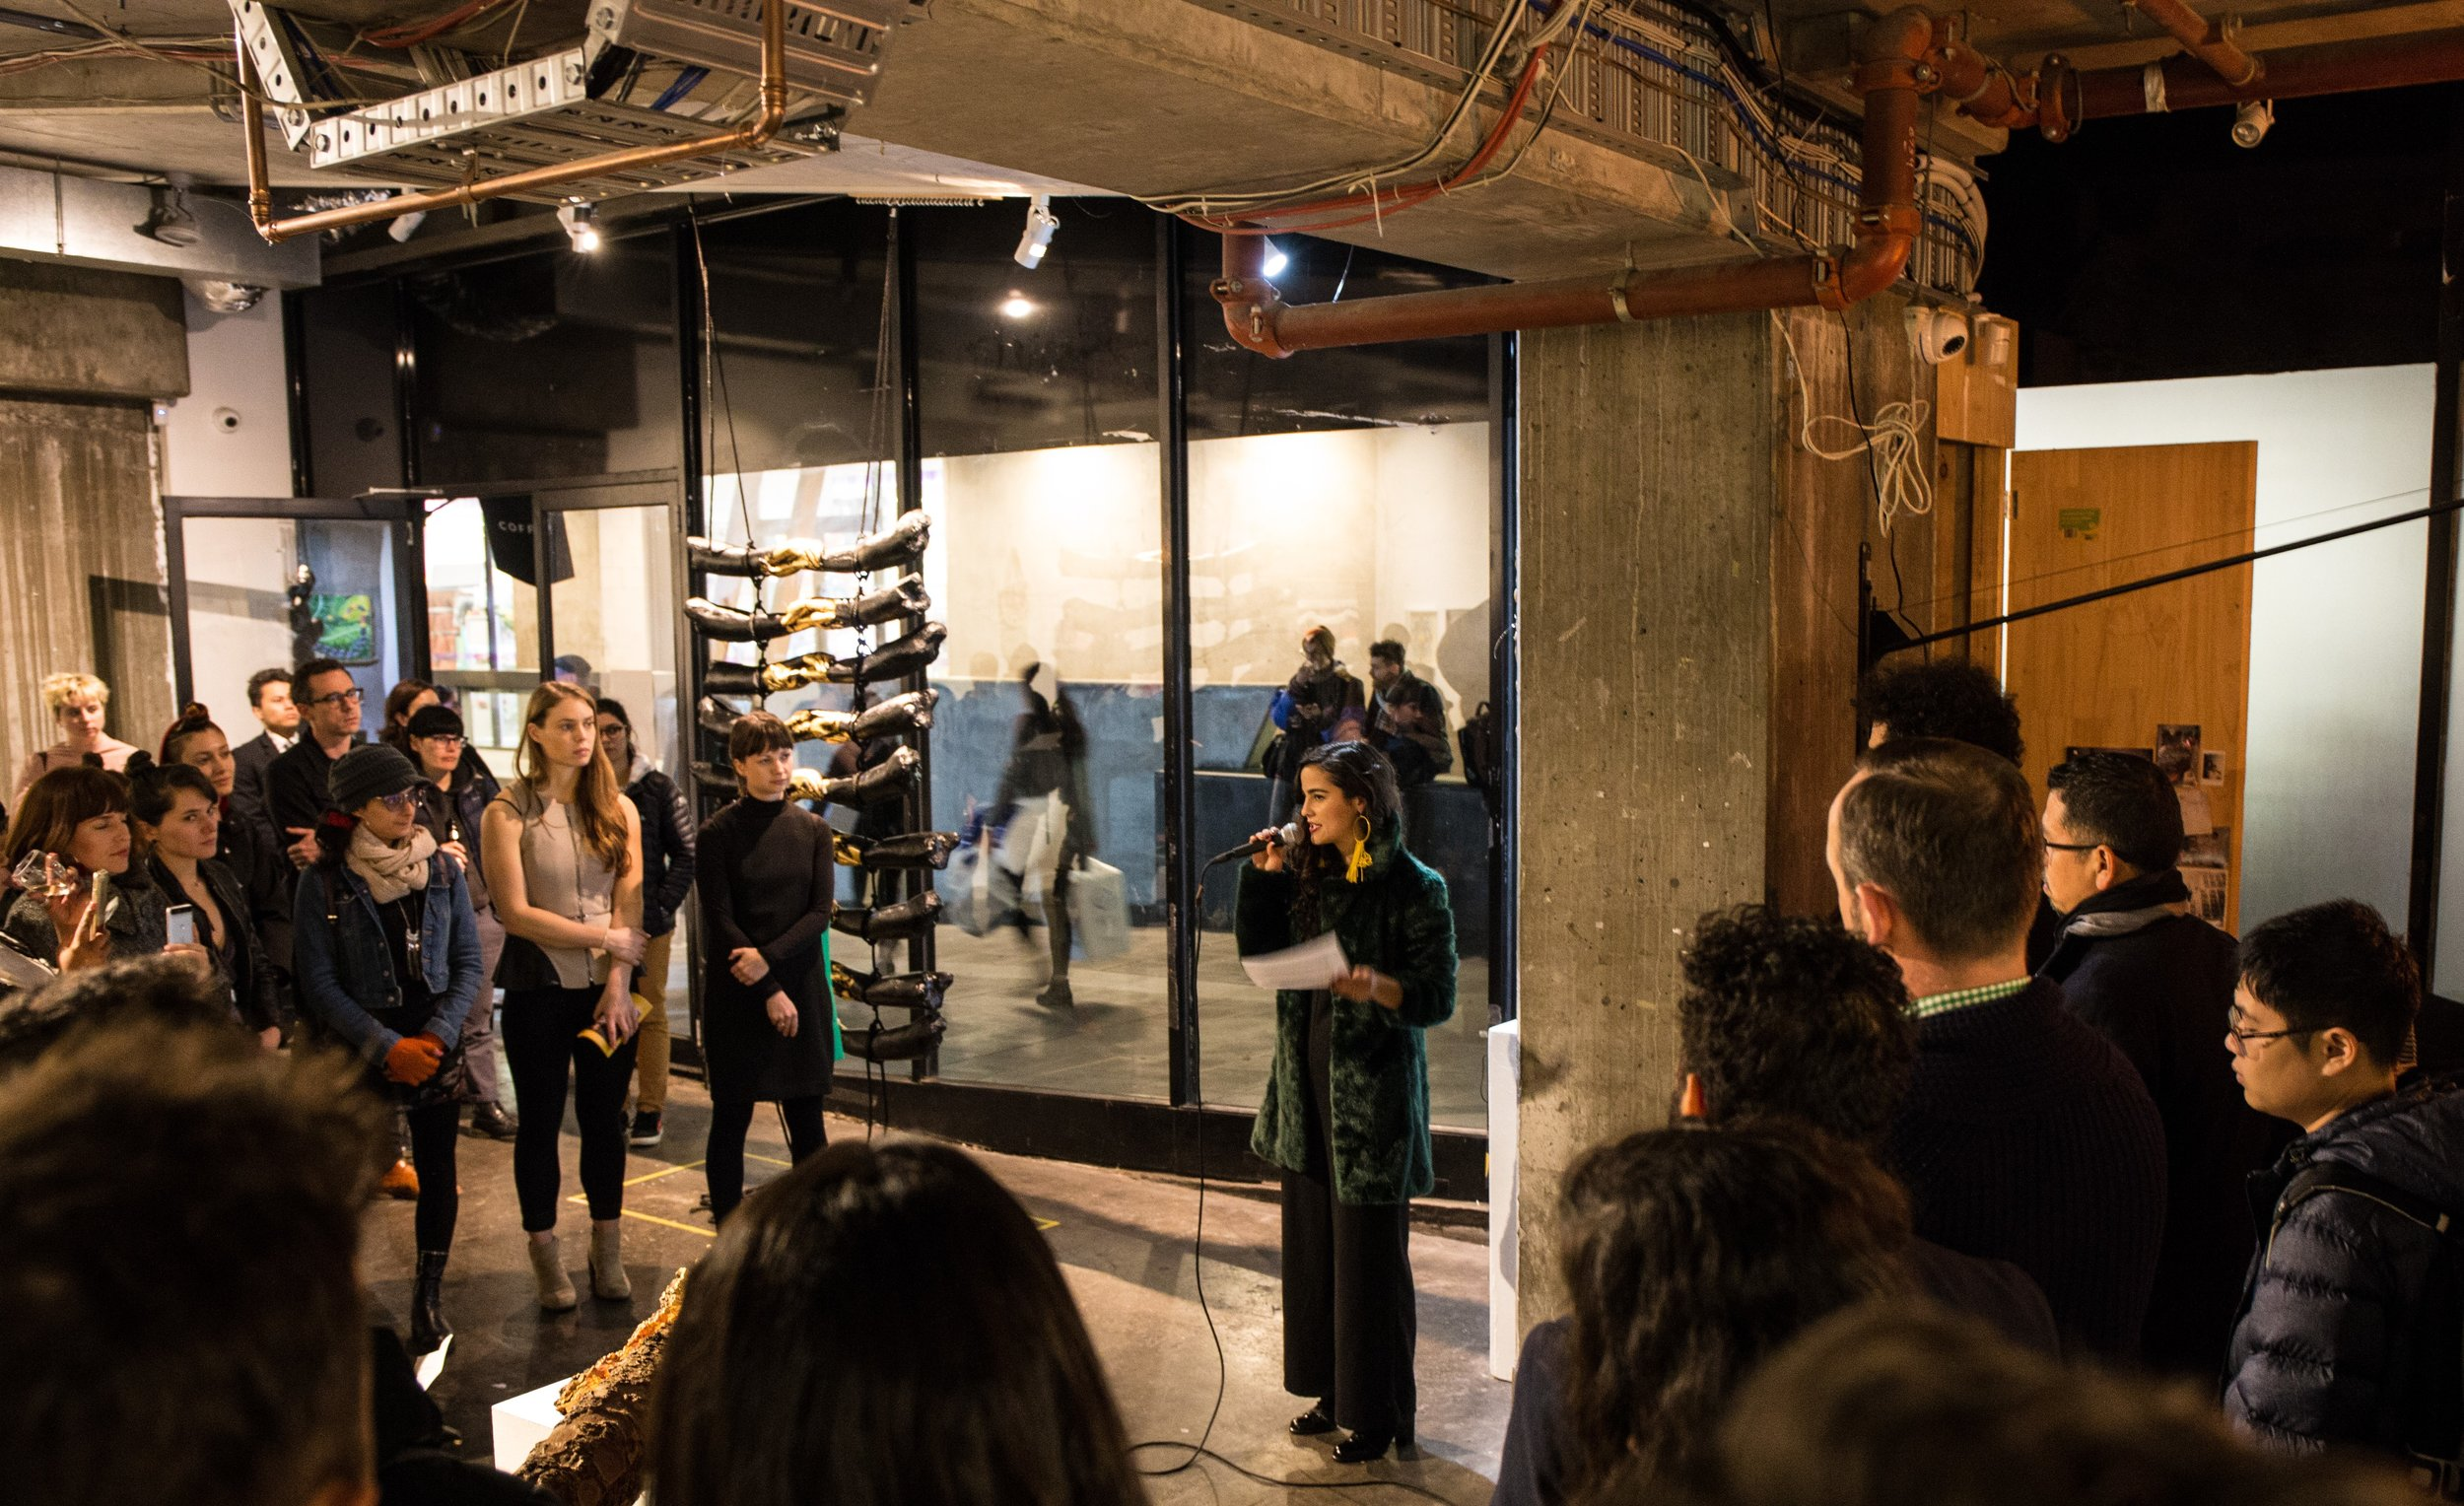 During the opening of the first group art exhibition of La Niña Project. Photos by Eri Brody